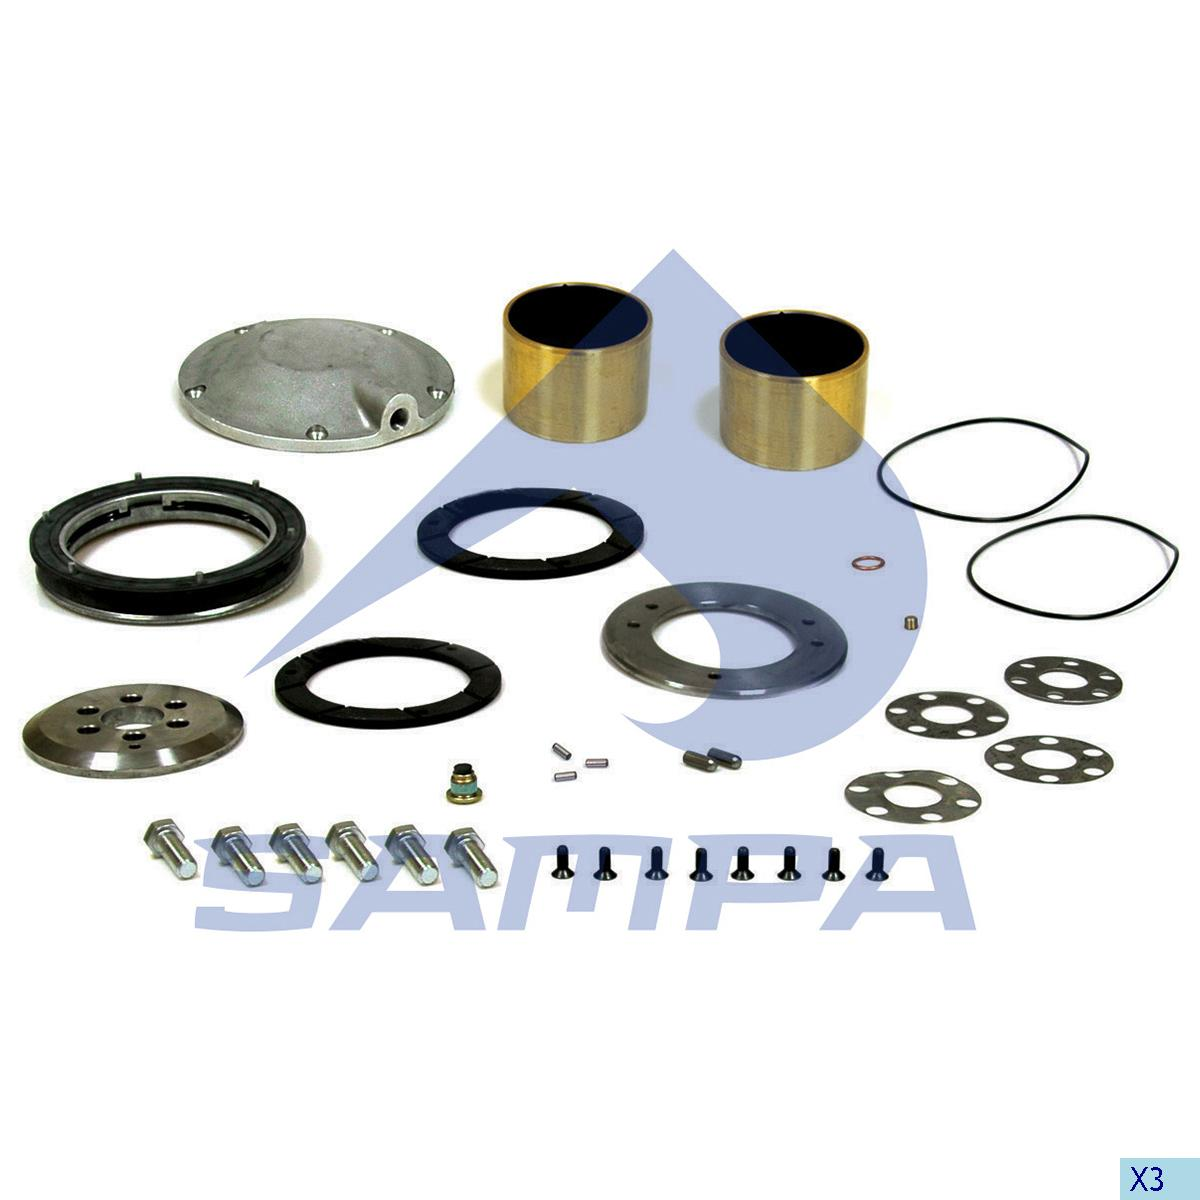 Repair Kit, Bogie Suspension, R.V.I., Suspension